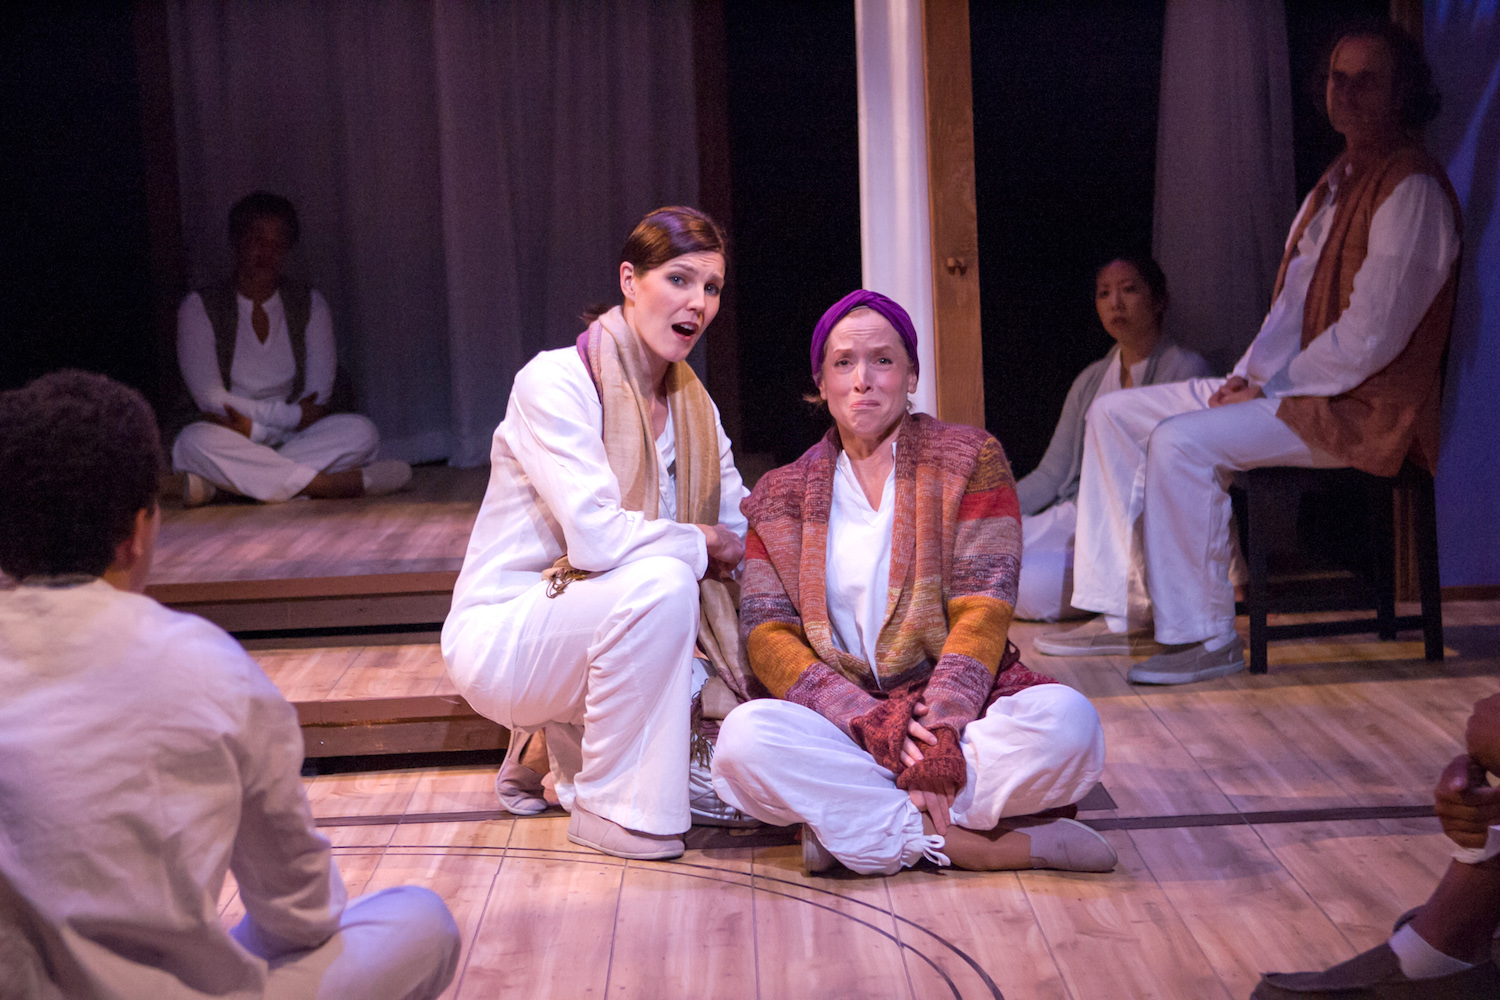 Annemaria Rajala (Sid), Bekka Fink (Myra). Ashby Stage. Photo: Mike Padua.